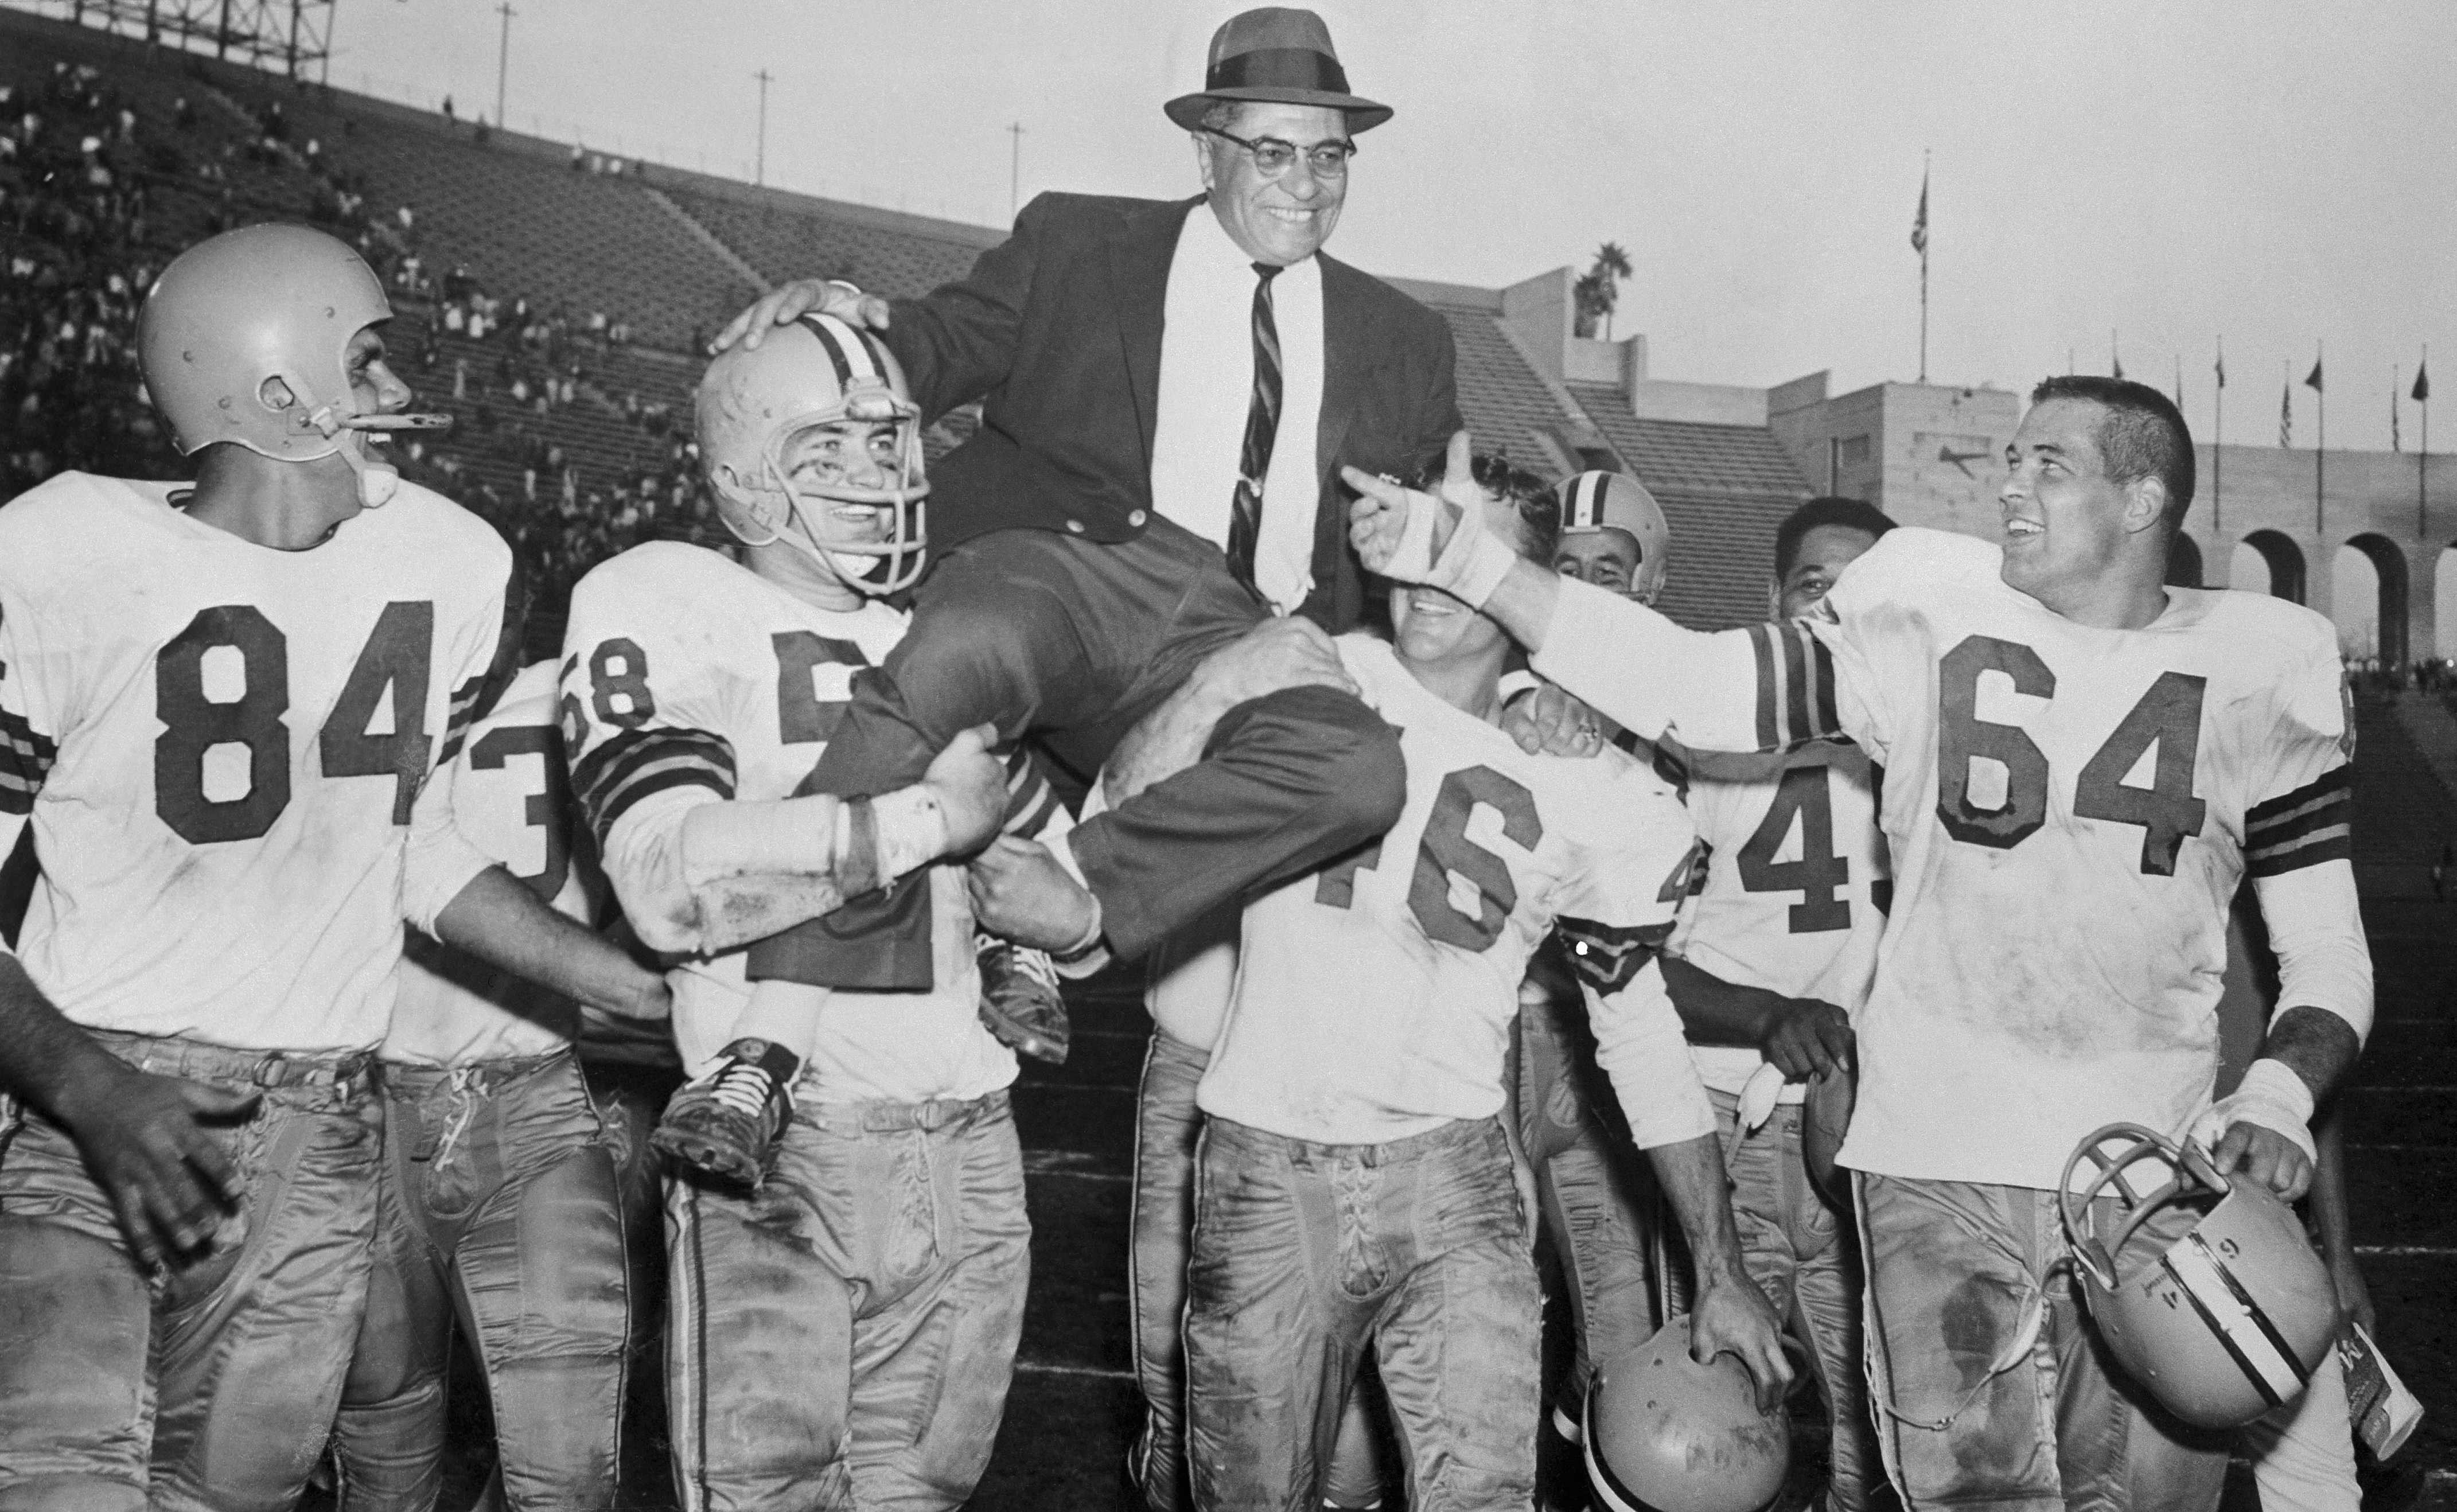 Green Bay Packers coach Vince Lombardi is held aloft by his team after clinching a division title in 1960. (Image by Bettmann/Getty Images)